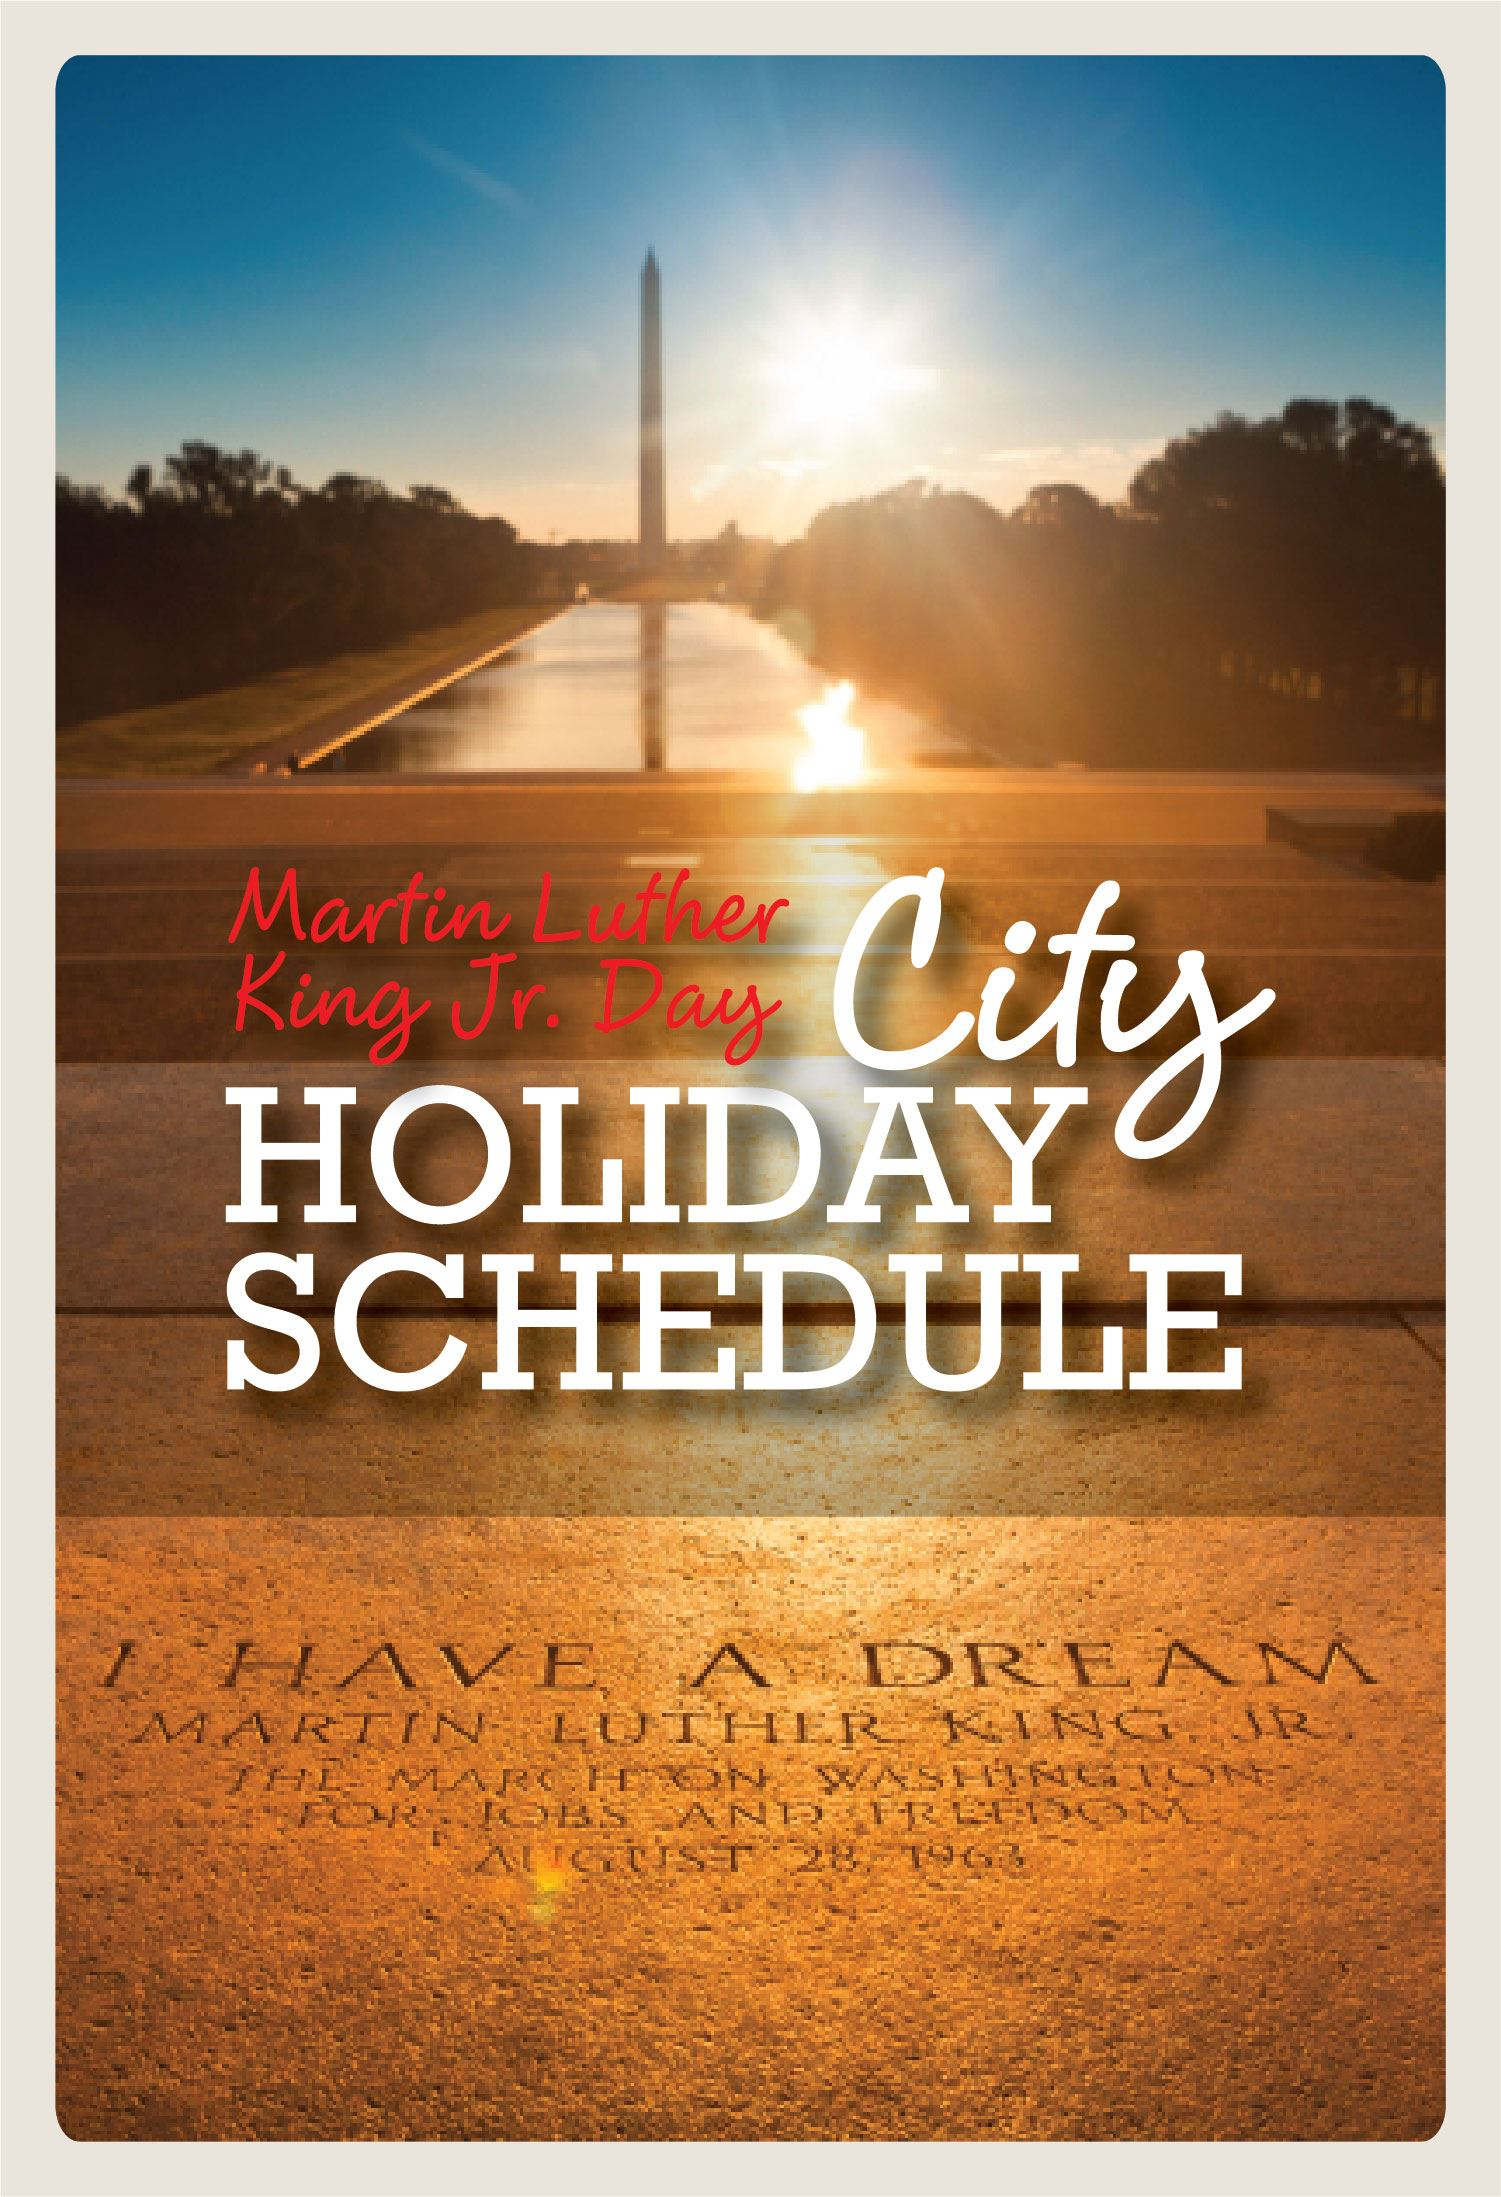 MLK_City Schedule_360x527